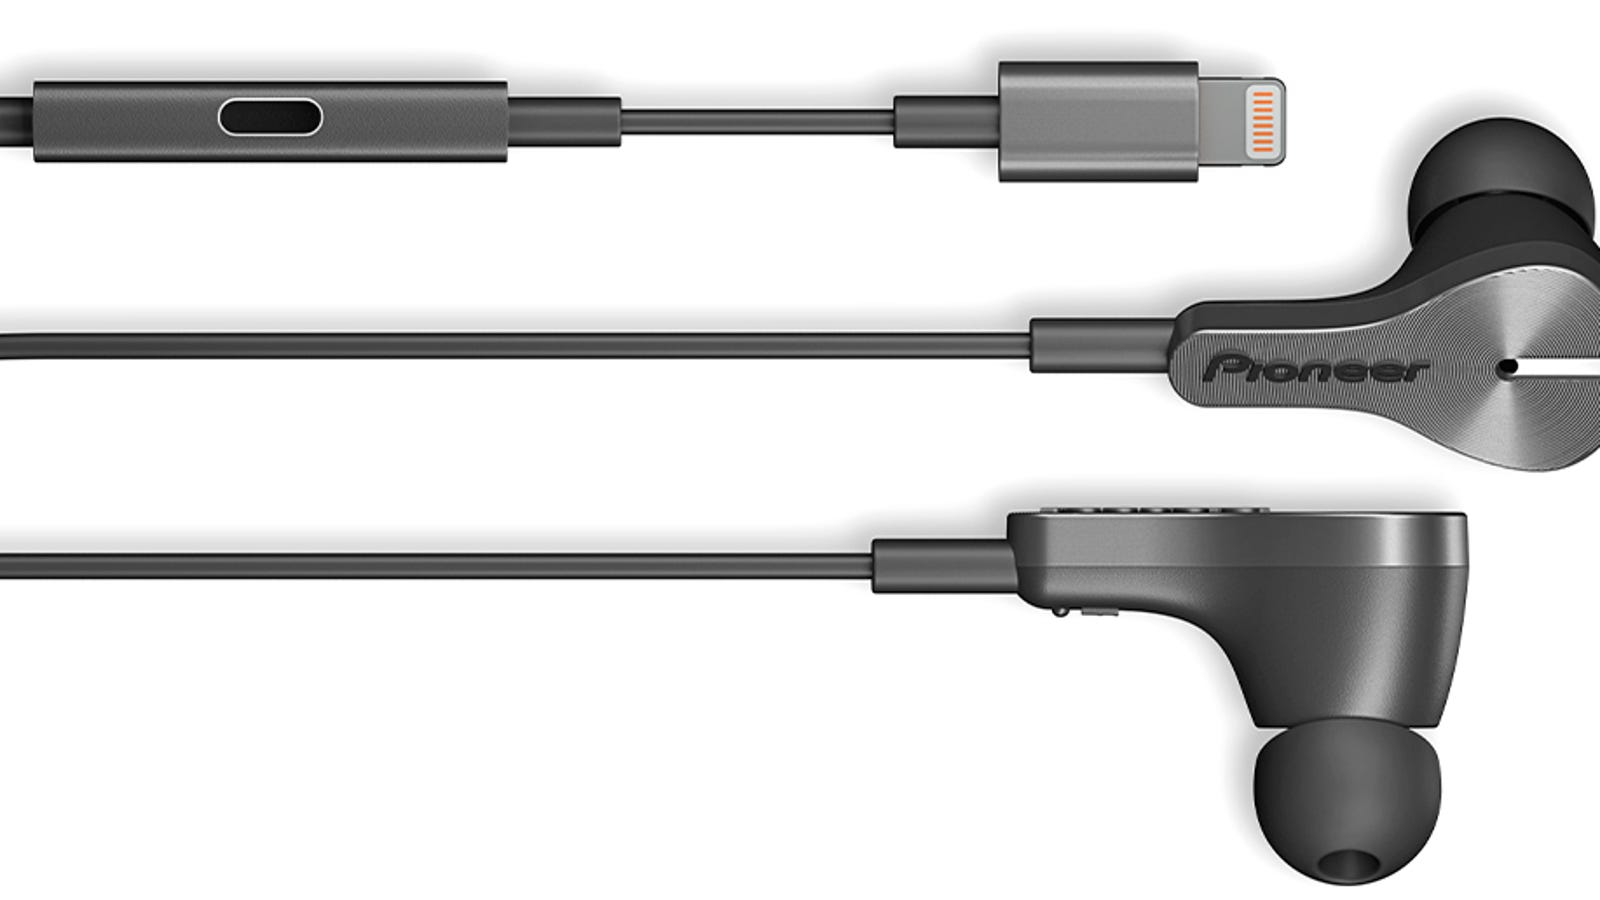 skullcandy earbuds wired - Pioneer's New Lightning Earbuds Solve an Annoying iPhone Problem